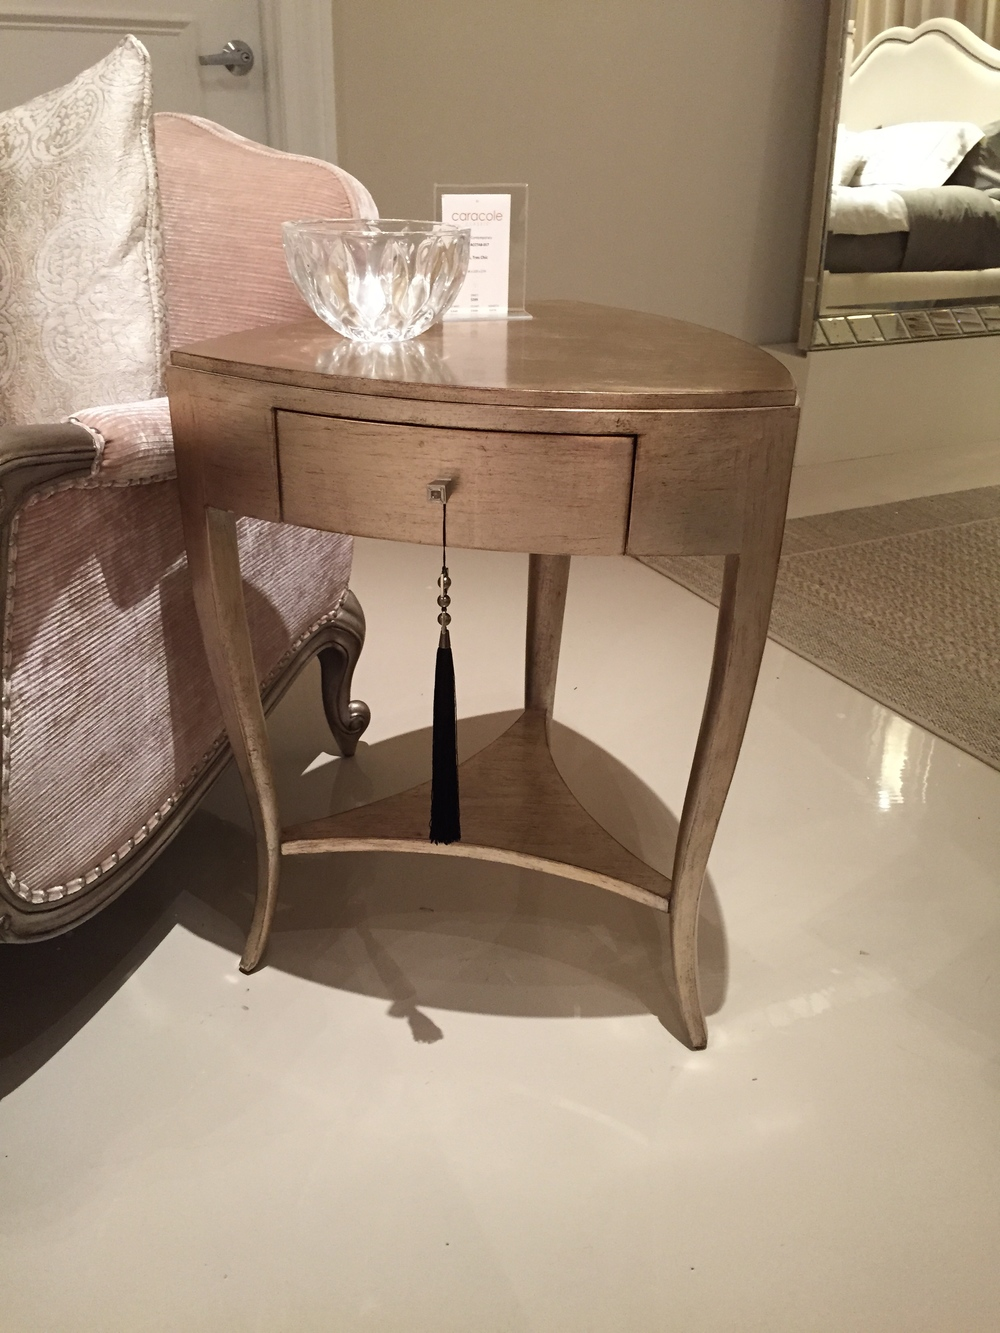 The perfect side table for any space!